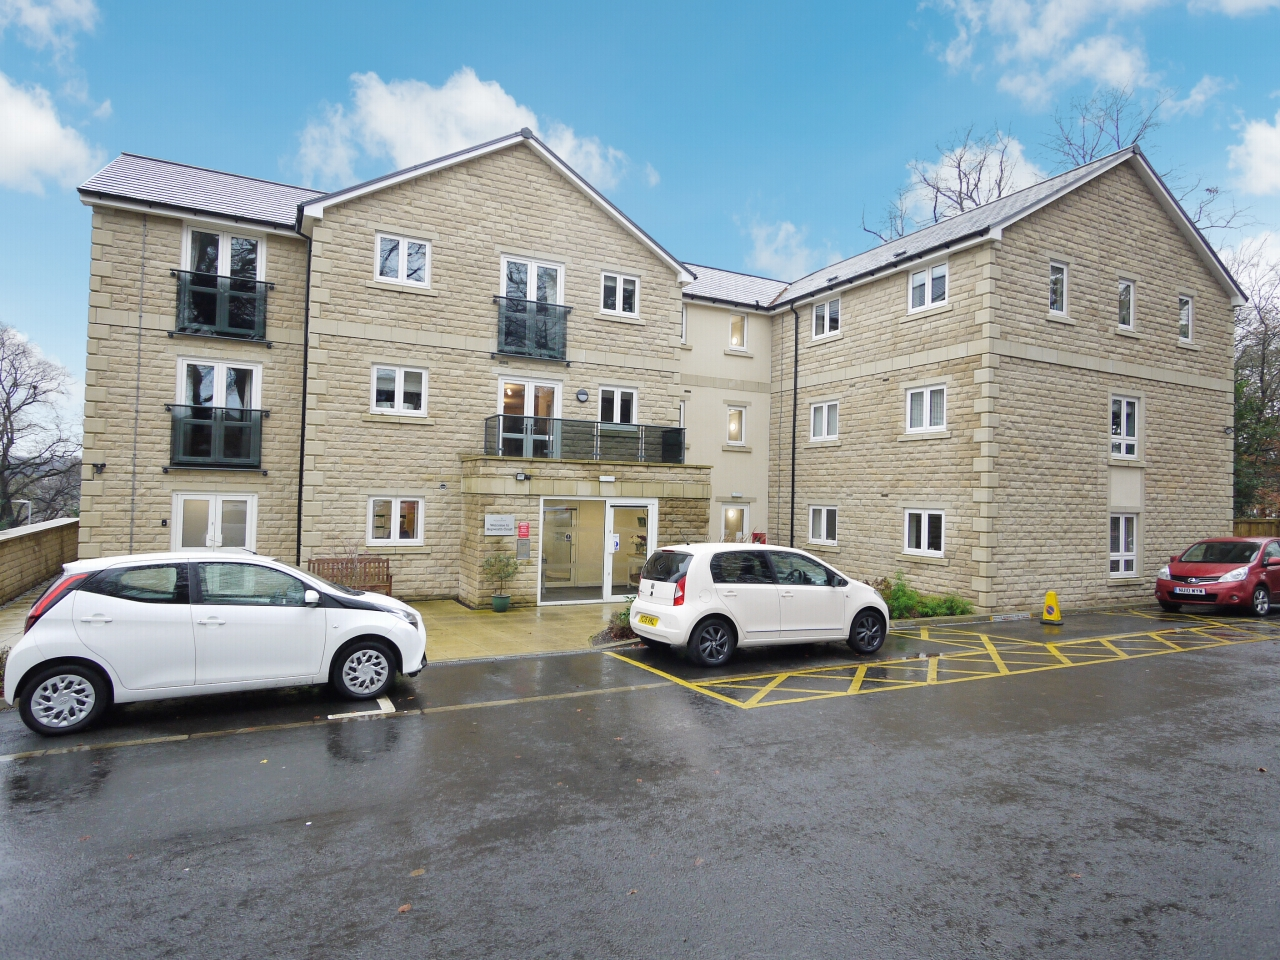 2 bedroom apartment flat/apartment For Sale in Brighouse - Photograph 1.